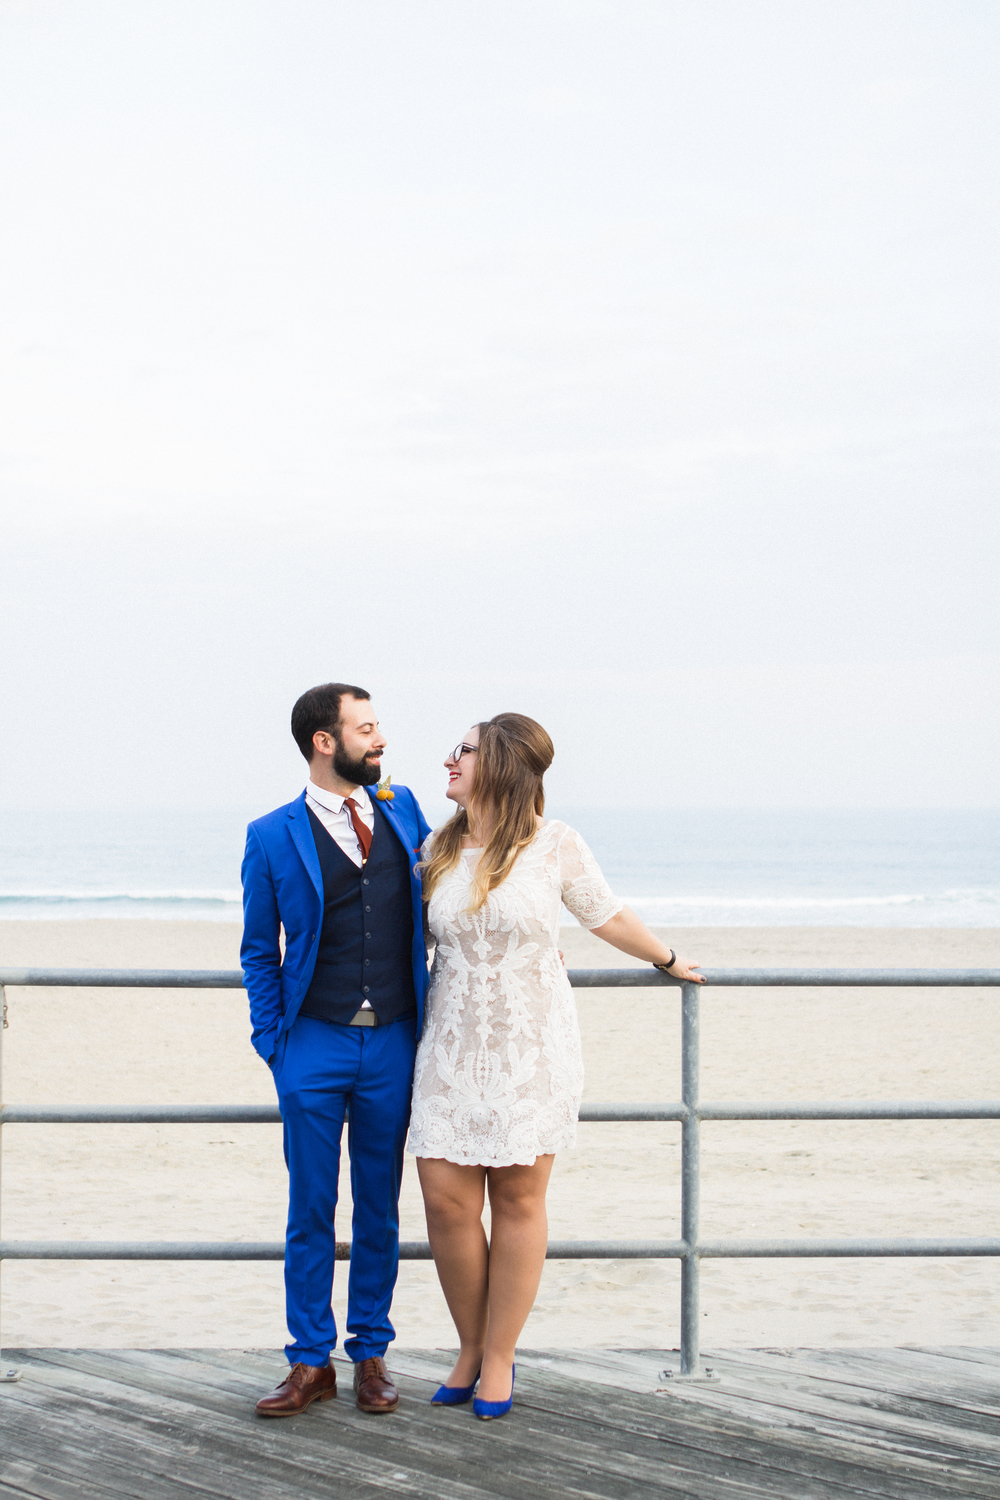 Victoria and Nick Asbury Park Boardwalk Tim McLoone's Supper Club New Jersey Shore Wedding Shannon Sorensen Photography